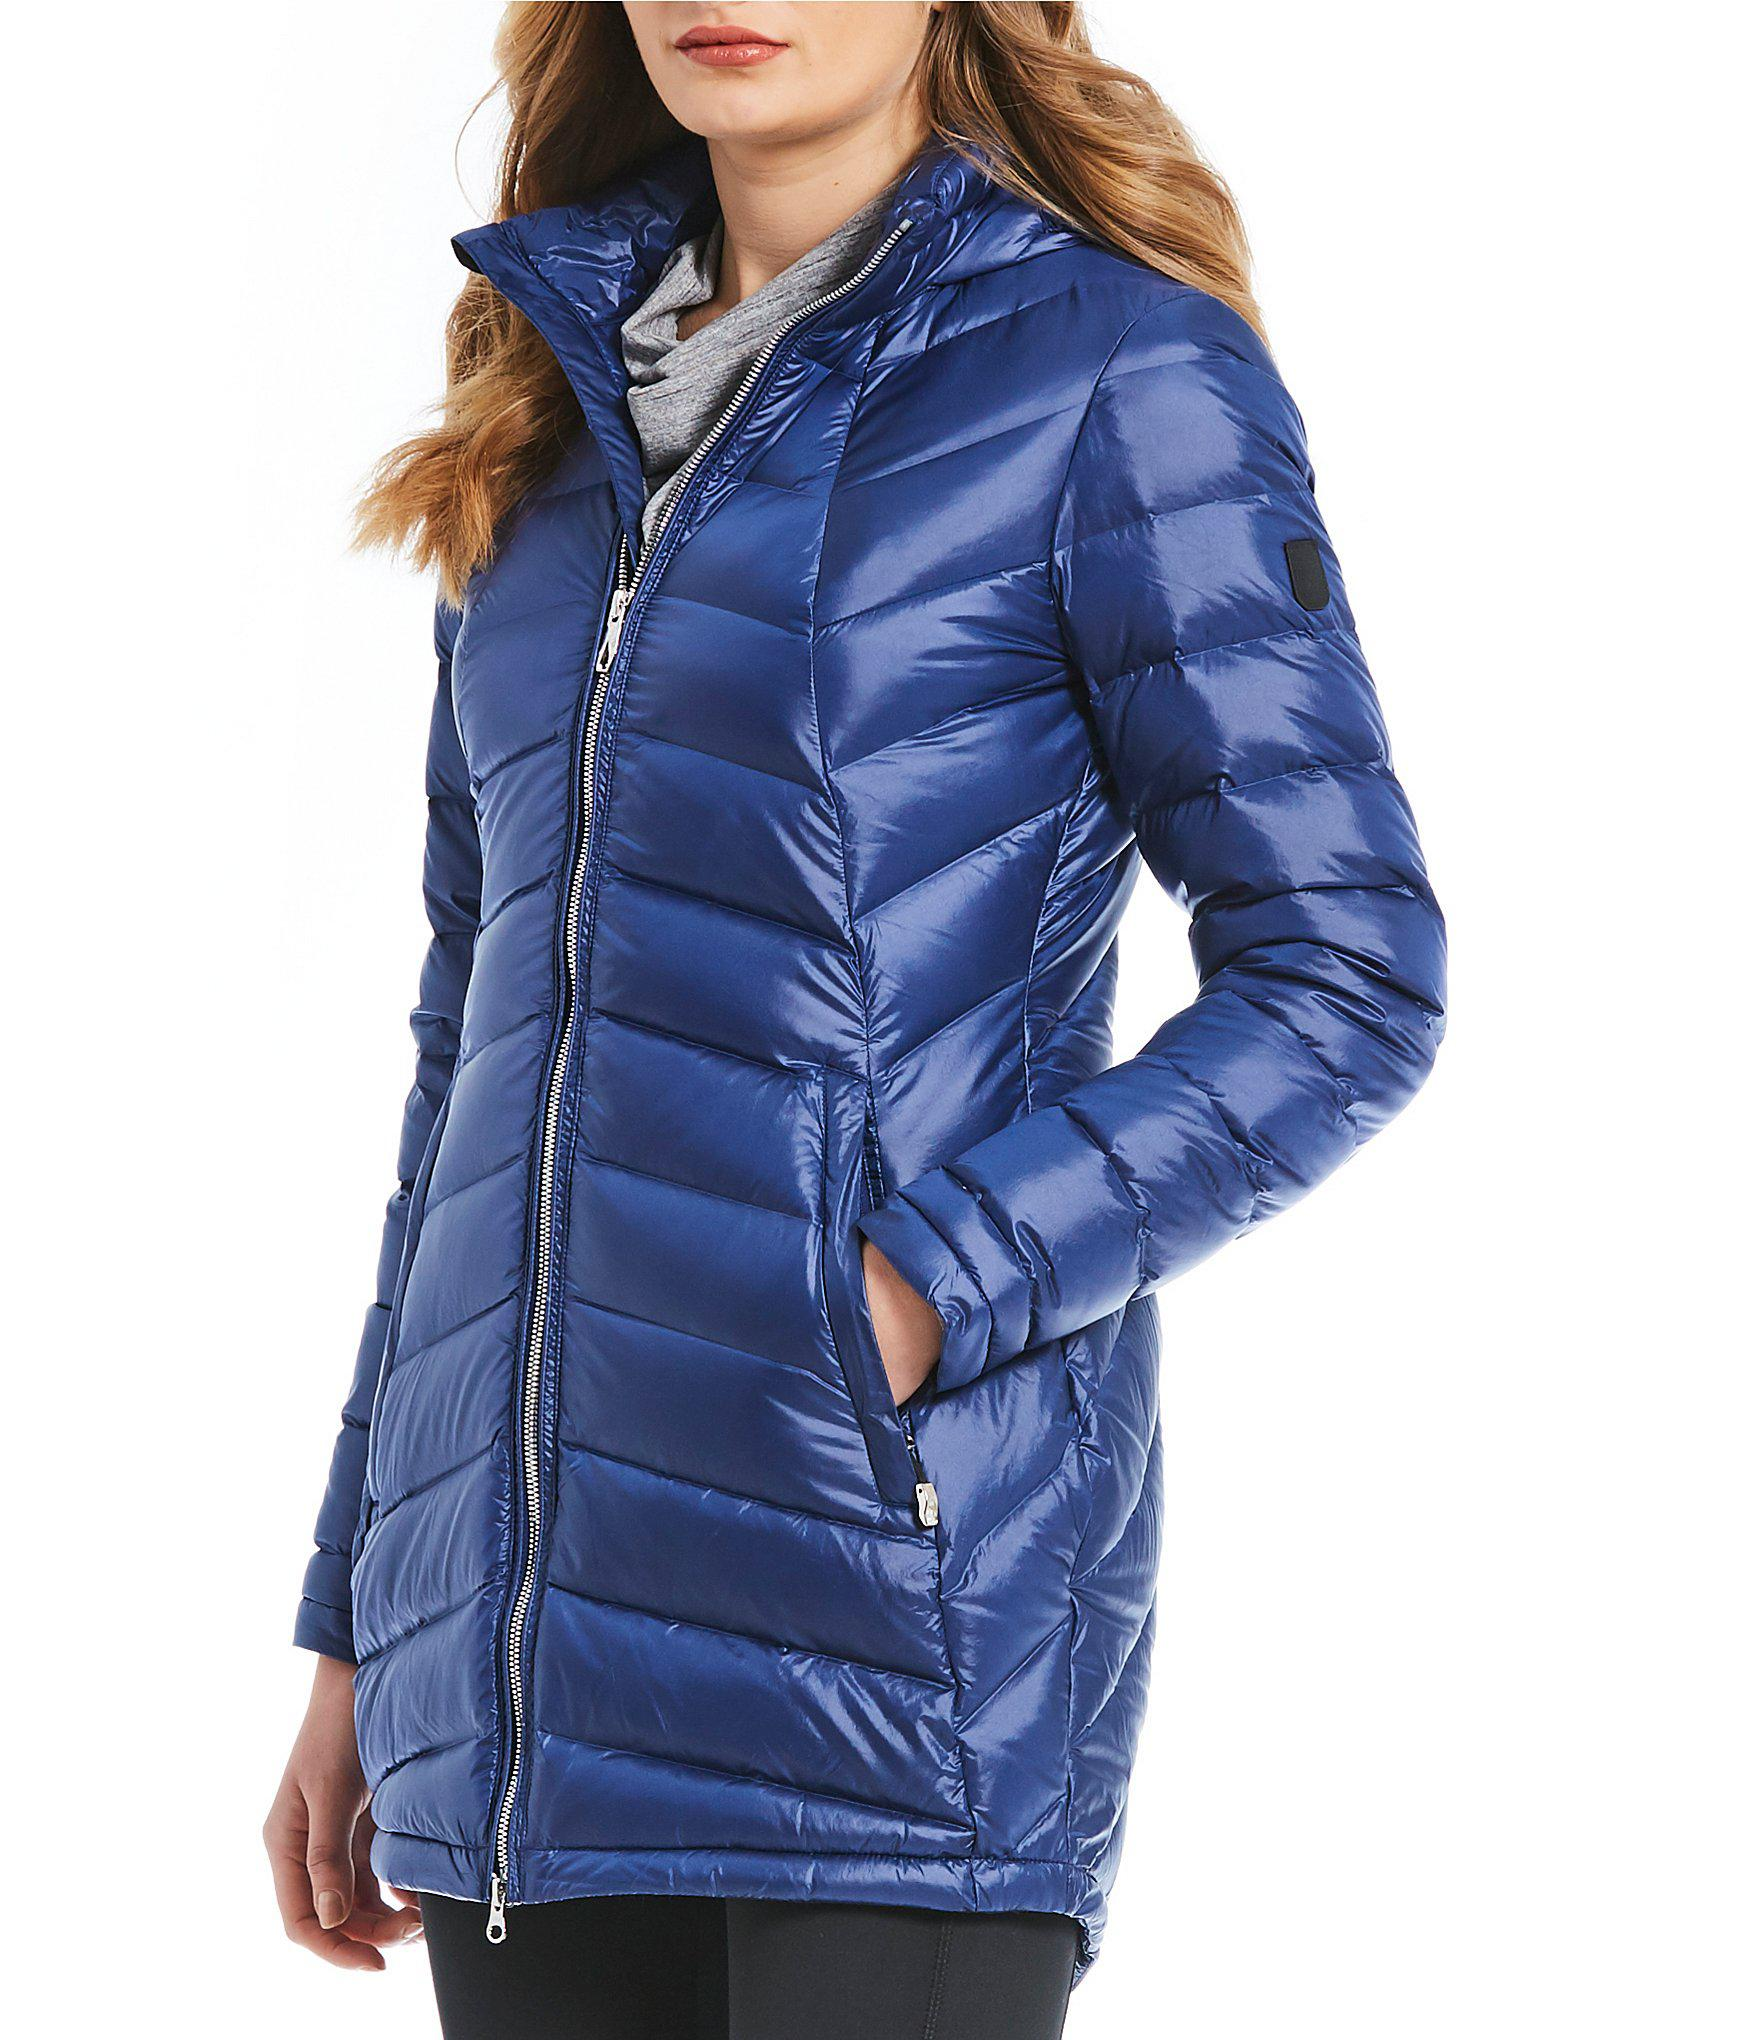 743762510 Lyst - Spyder Syrround Long Down Jacket in Blue